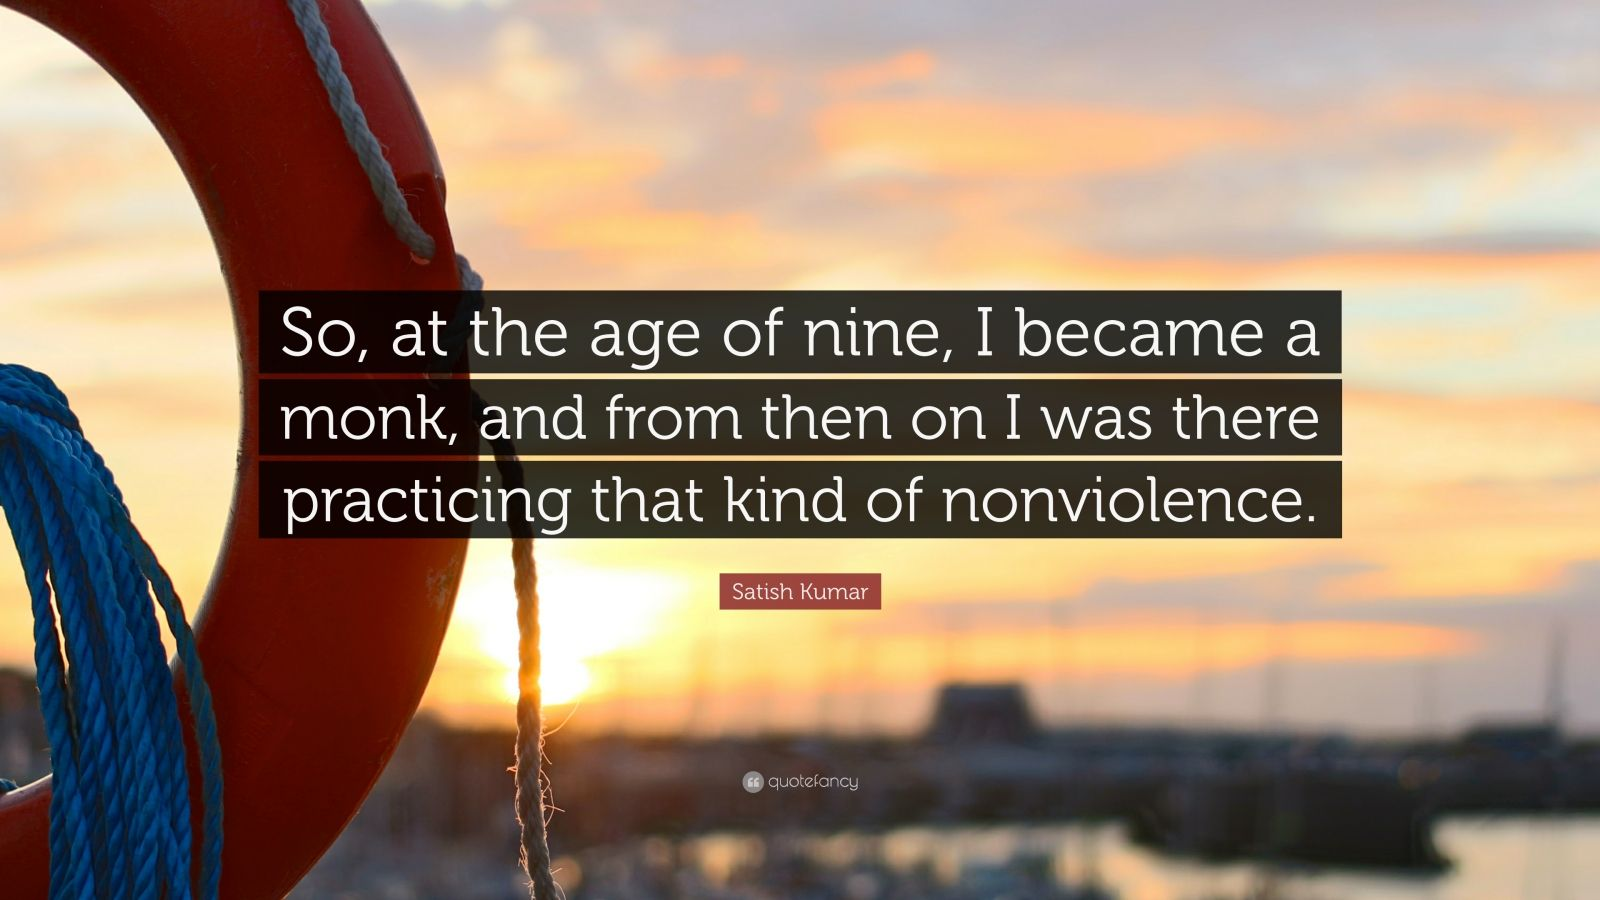 """Satish Kumar Quote: """"So, at the age of nine, I became a monk, and from then on I was there practicing that kind of nonviolence."""""""